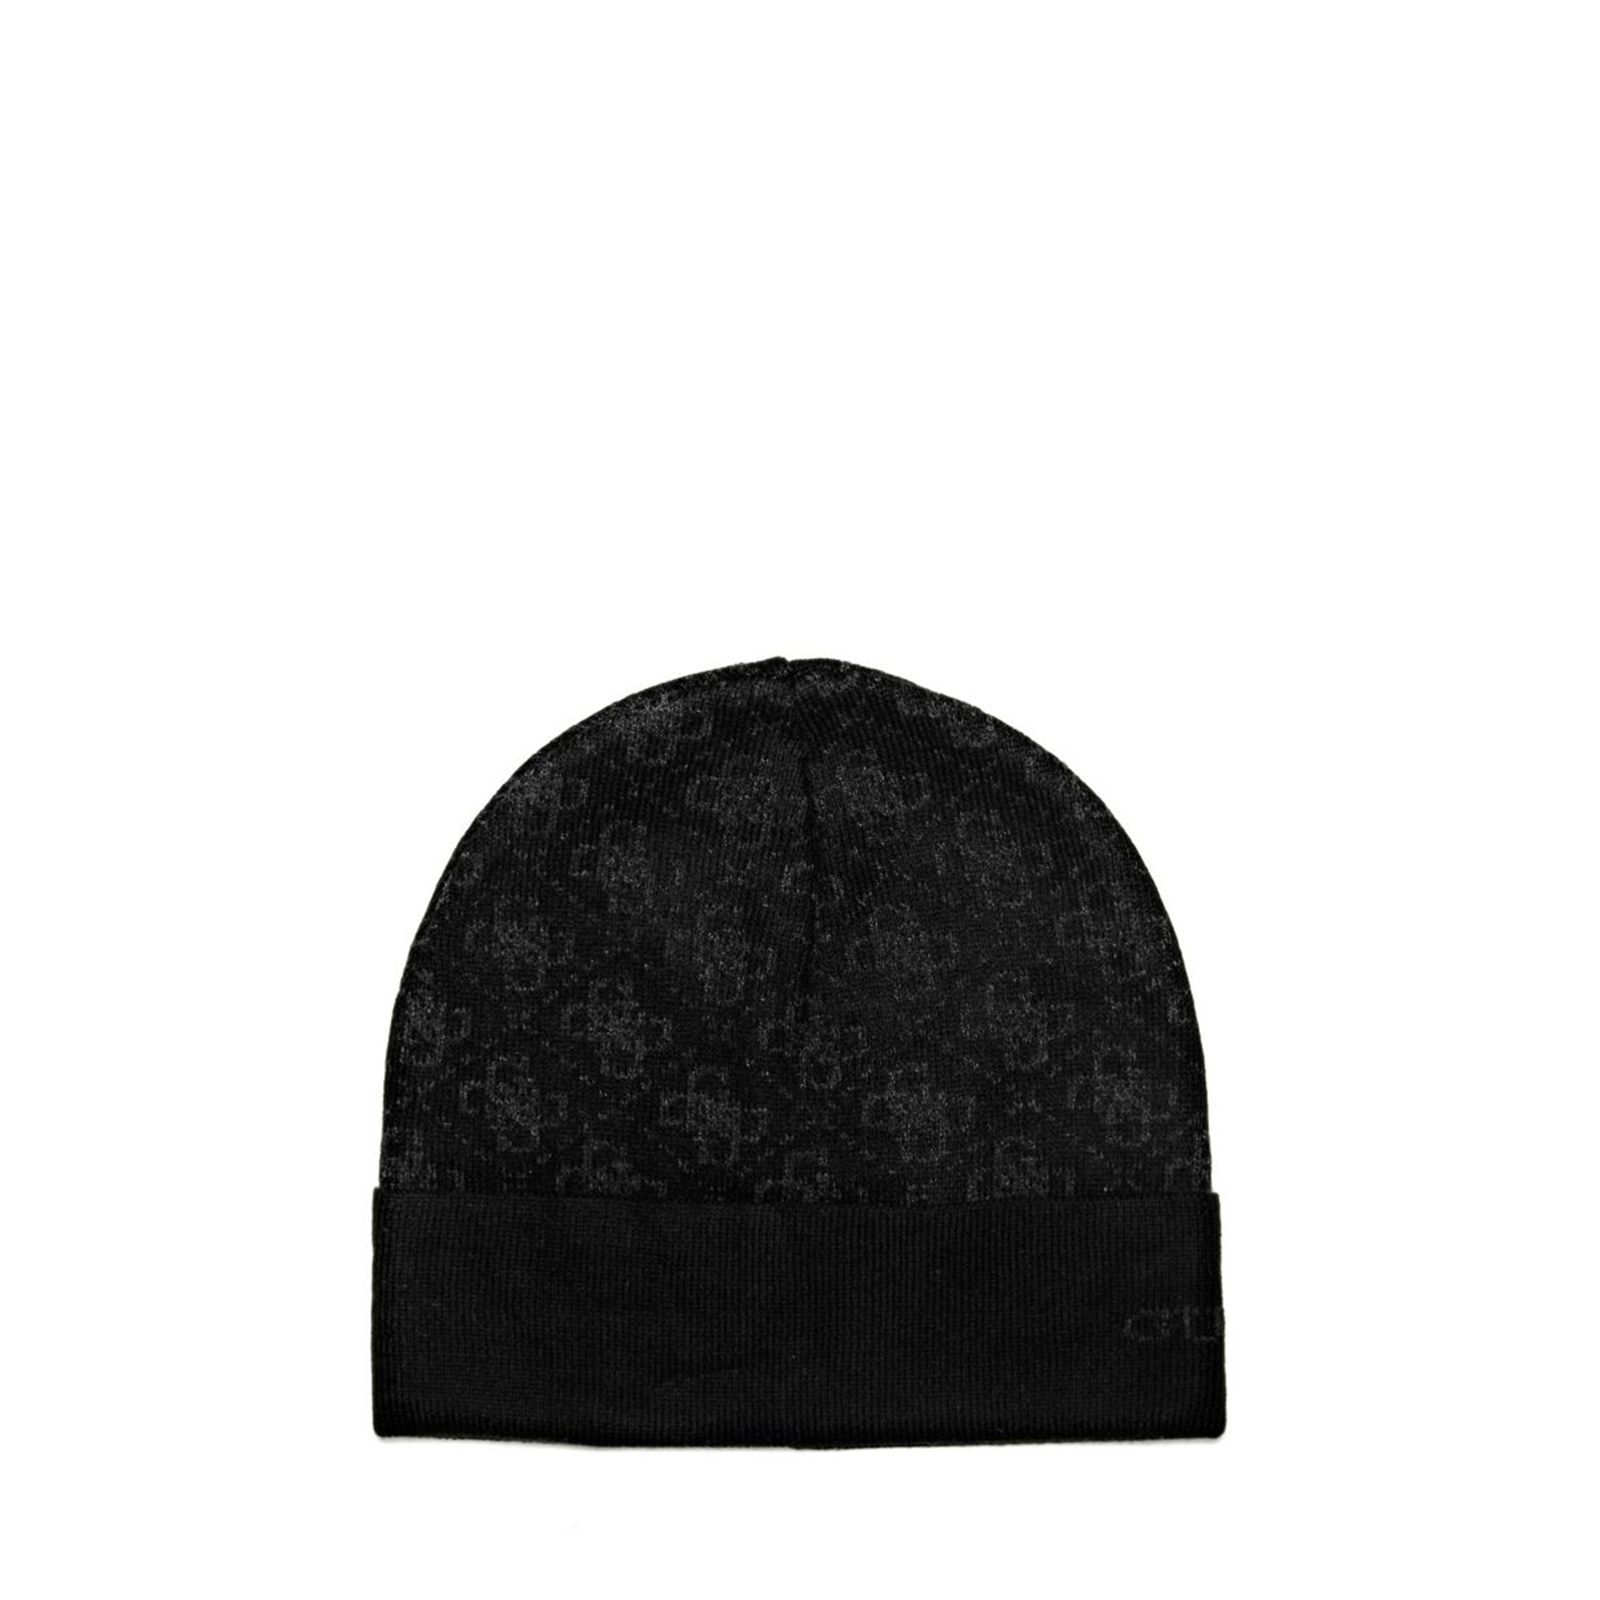 Guess Bonnet - noir